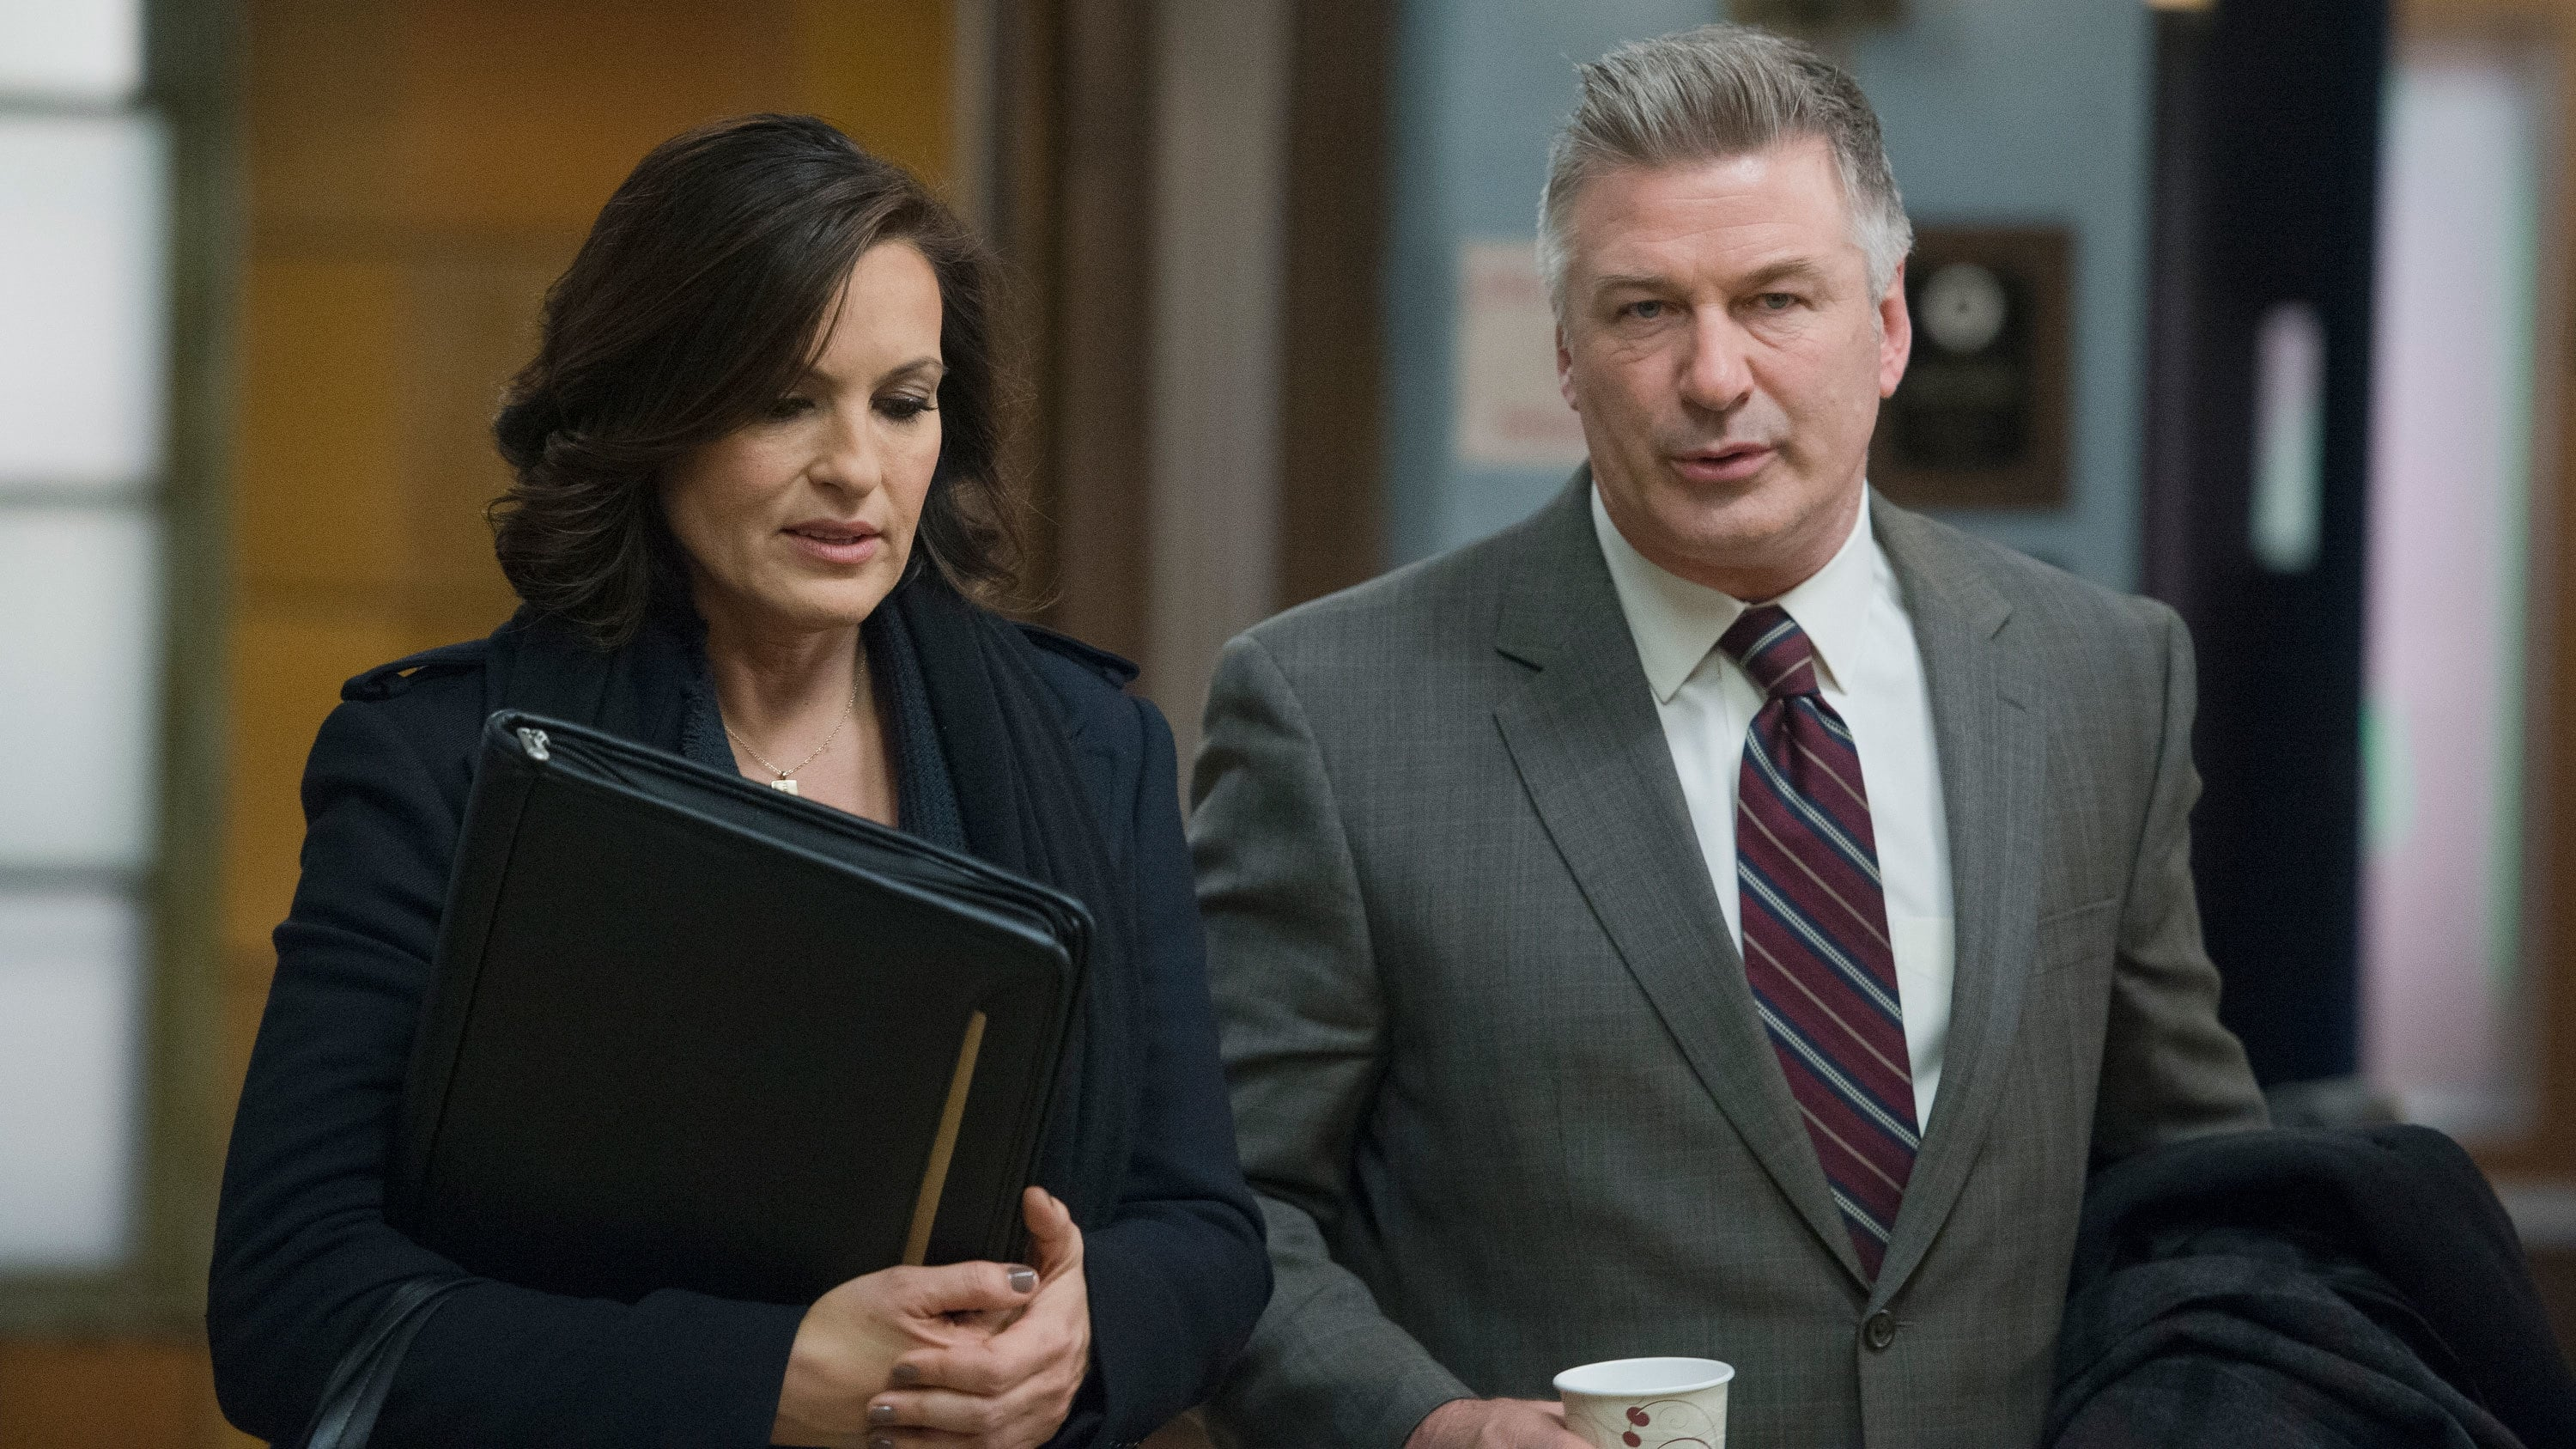 Law & Order: Special Victims Unit - Season 15 Episode 18 : Criminal Stories